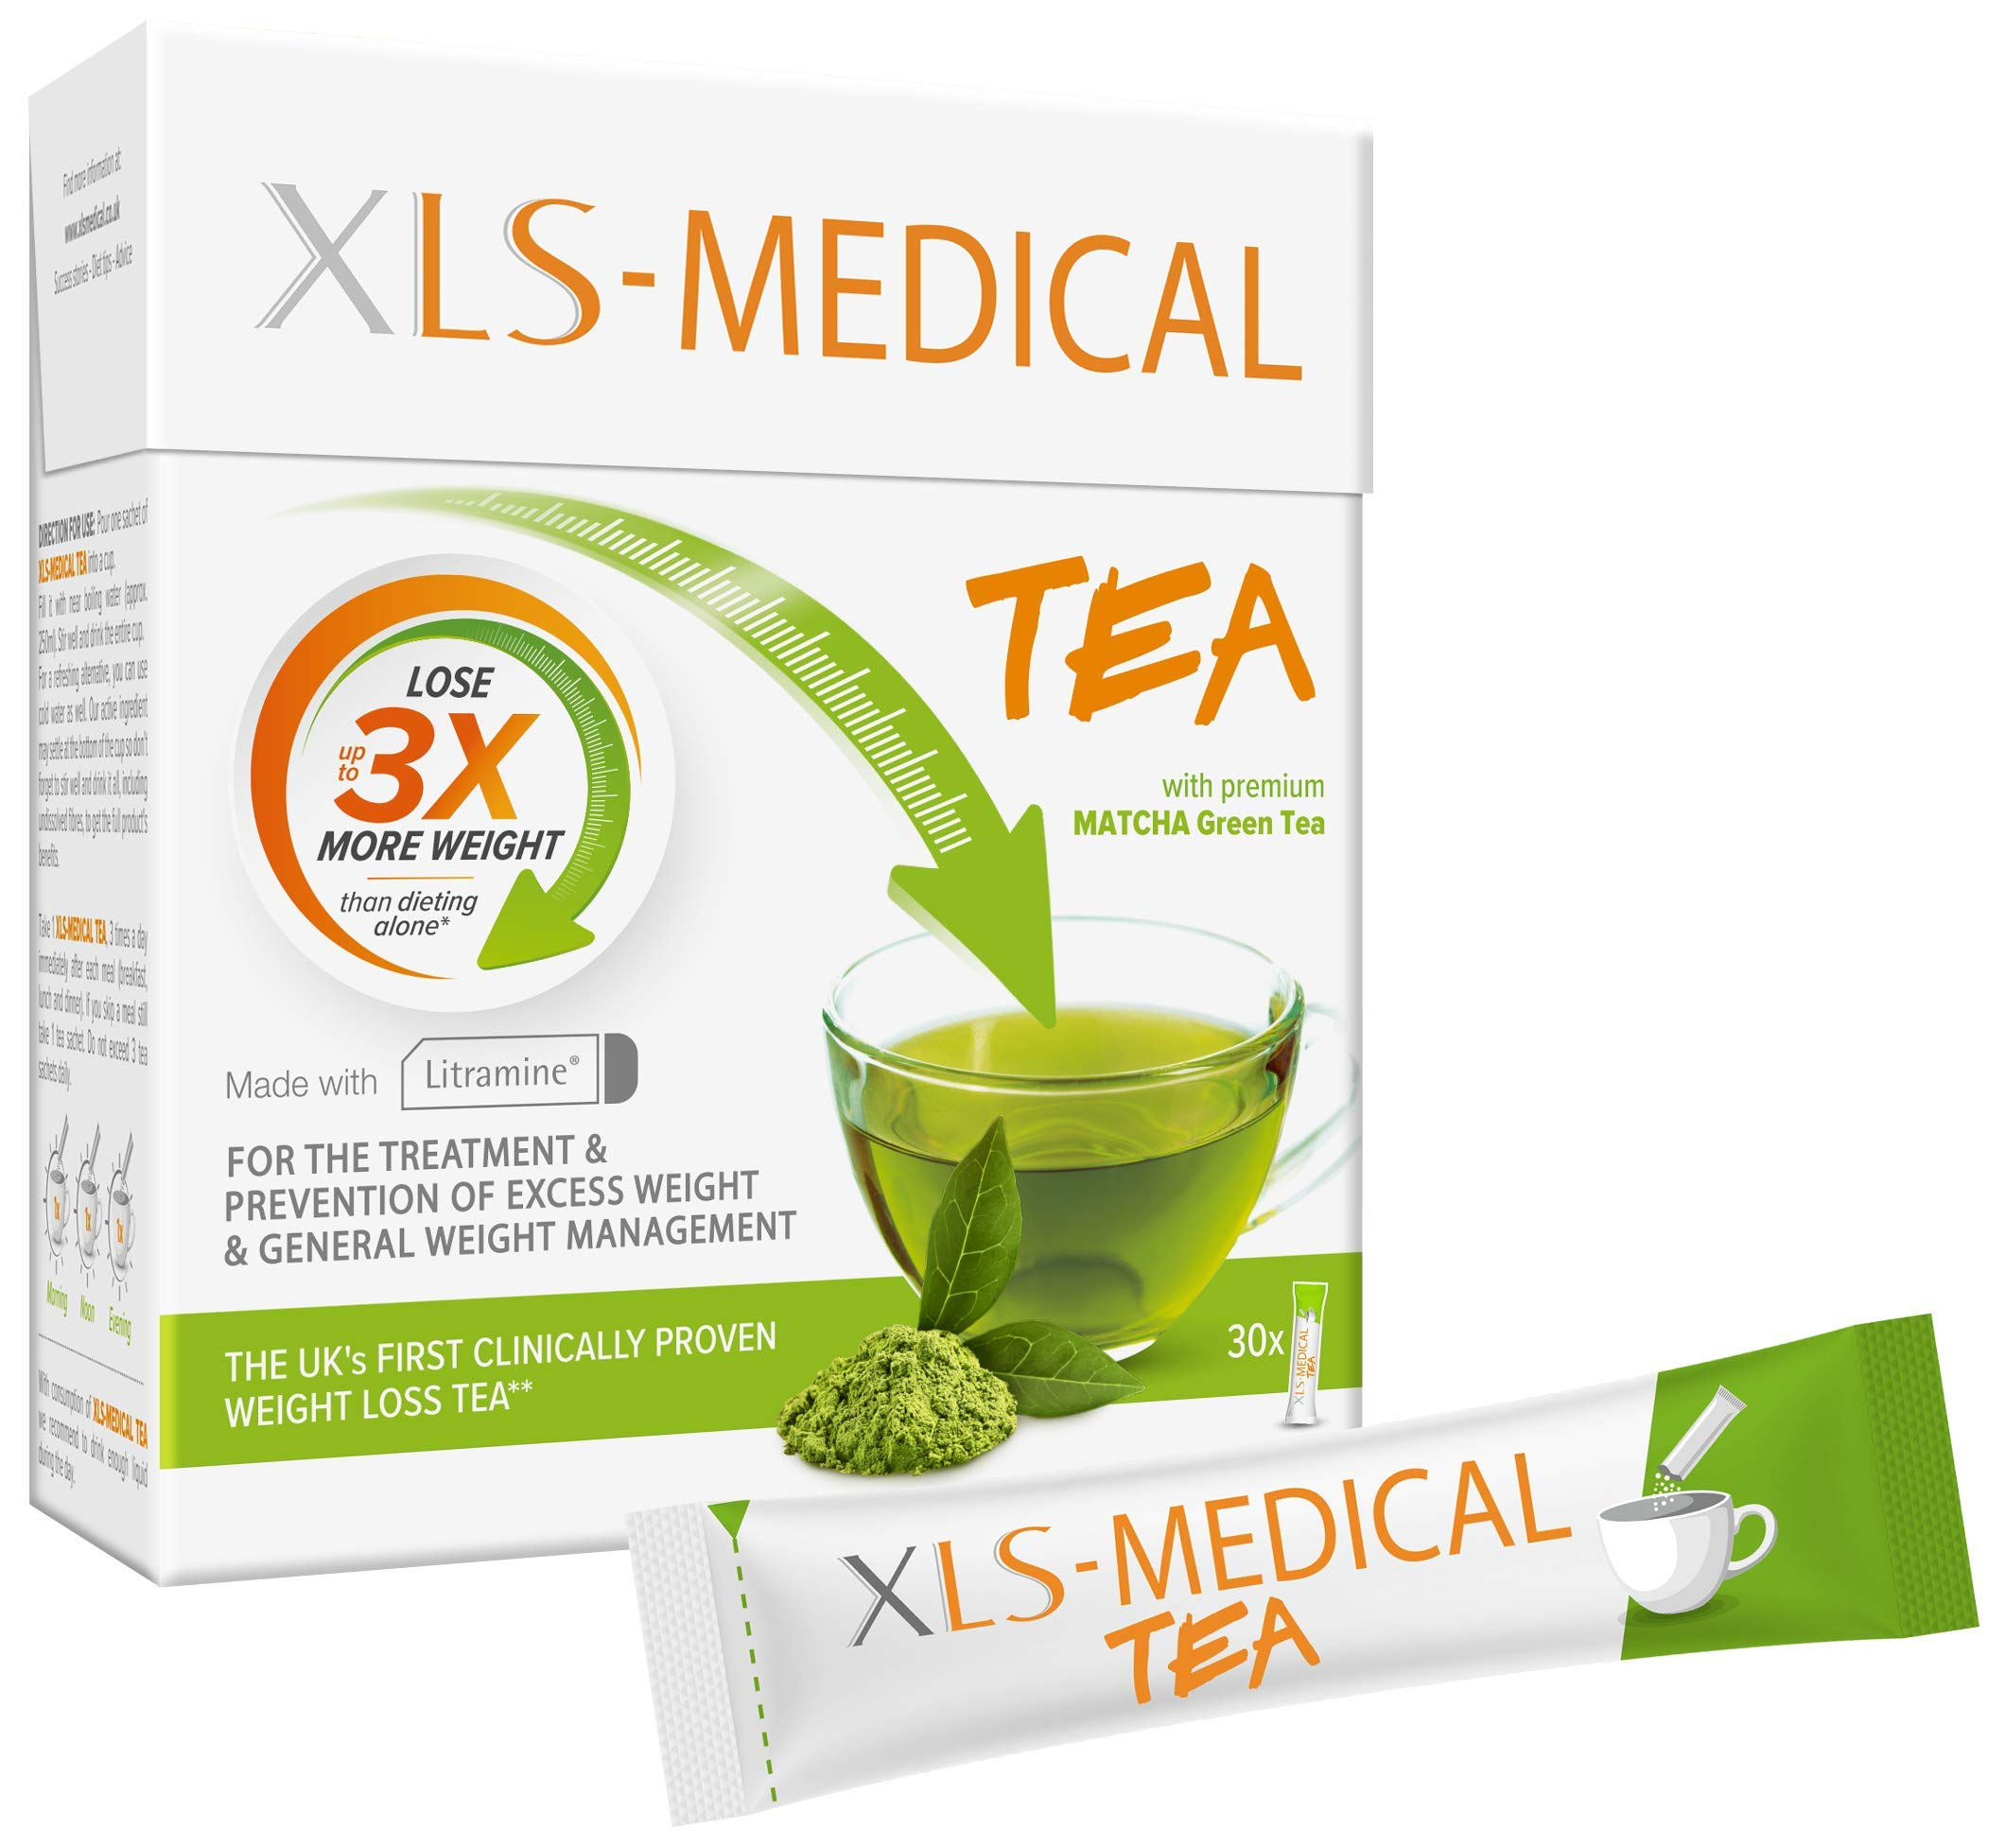 XLS-Medical Tea - Reduce Calorie Intake from Dietary Fats - 30 Sachets, 10 Day Treatment